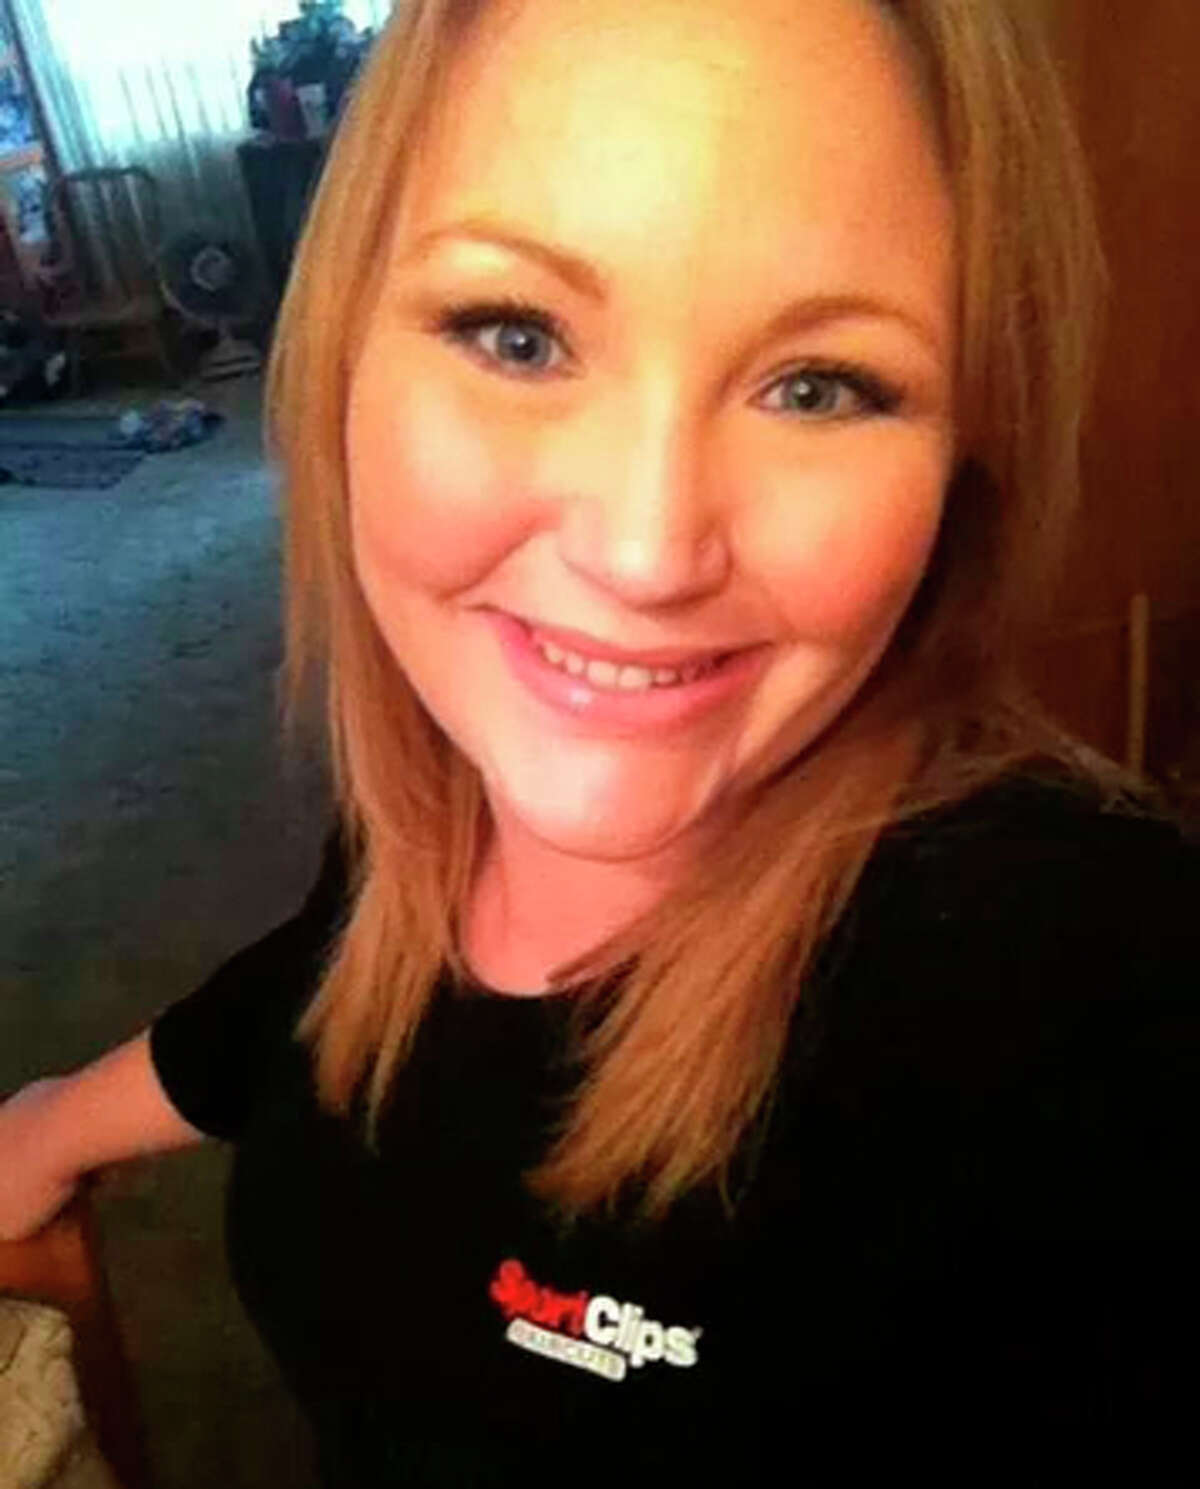 Lindsey Combs, a hairstylist who was two months pregnant, was killed Monday in a construction accident.